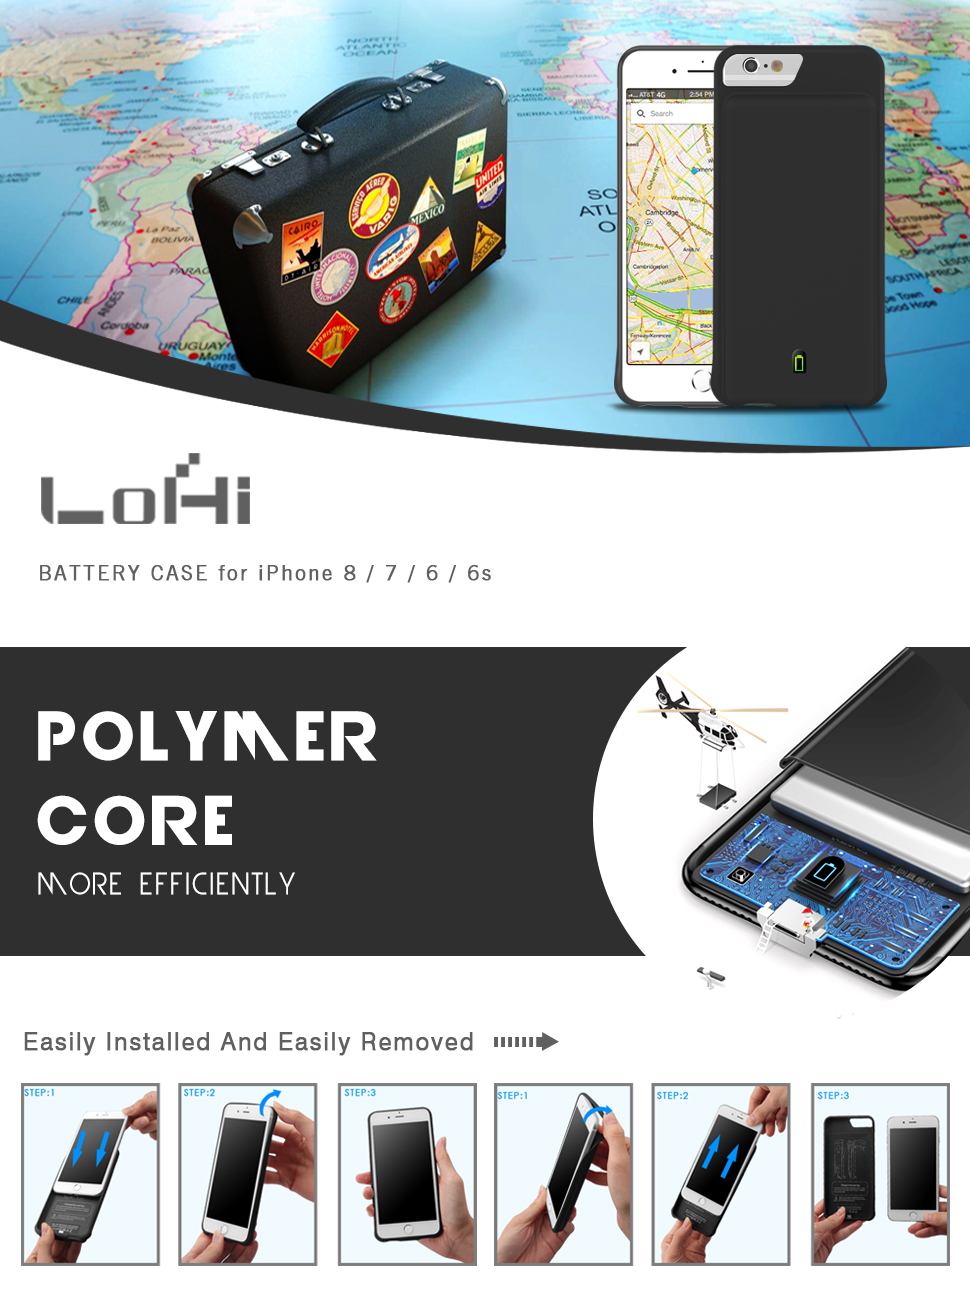 iPhone 8 / 7 / 6s / 6 Battery Case-LoHi